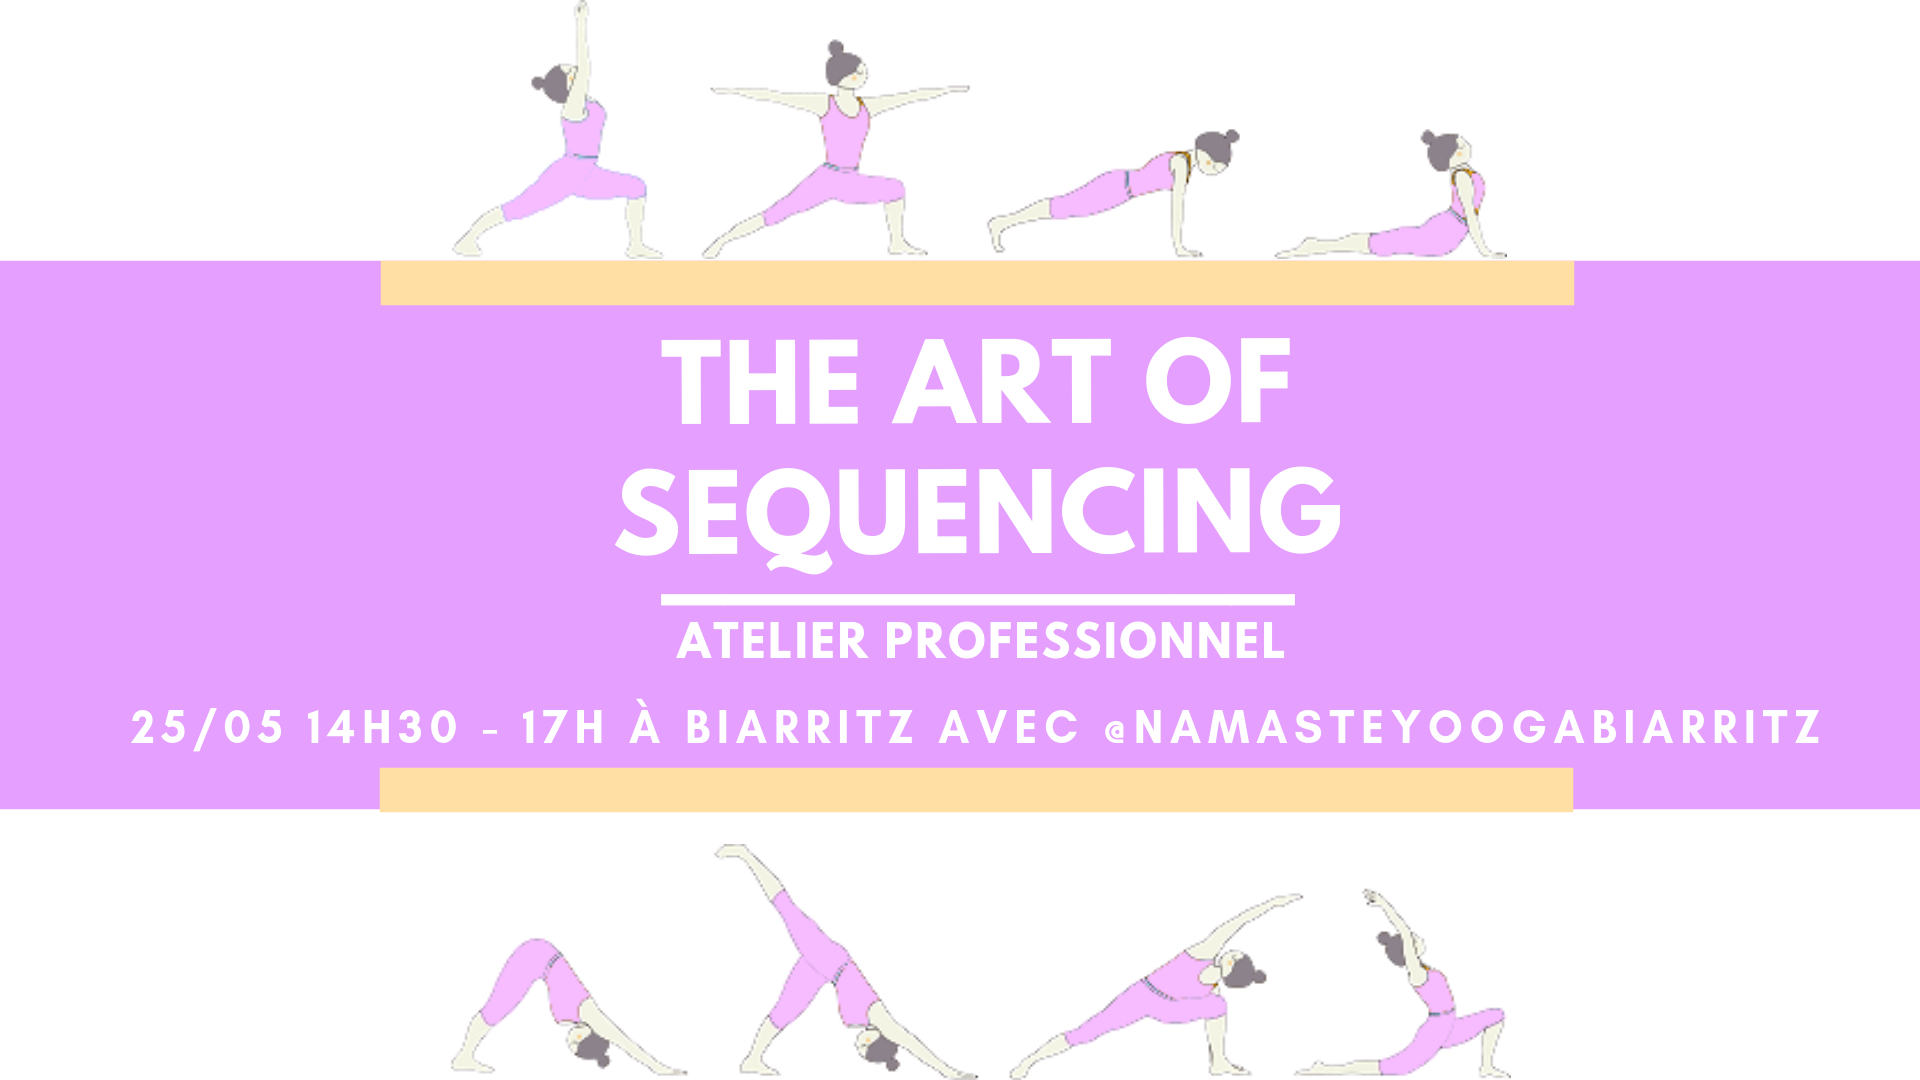 The Art of Sequencing Workshop - Atelier professionnel